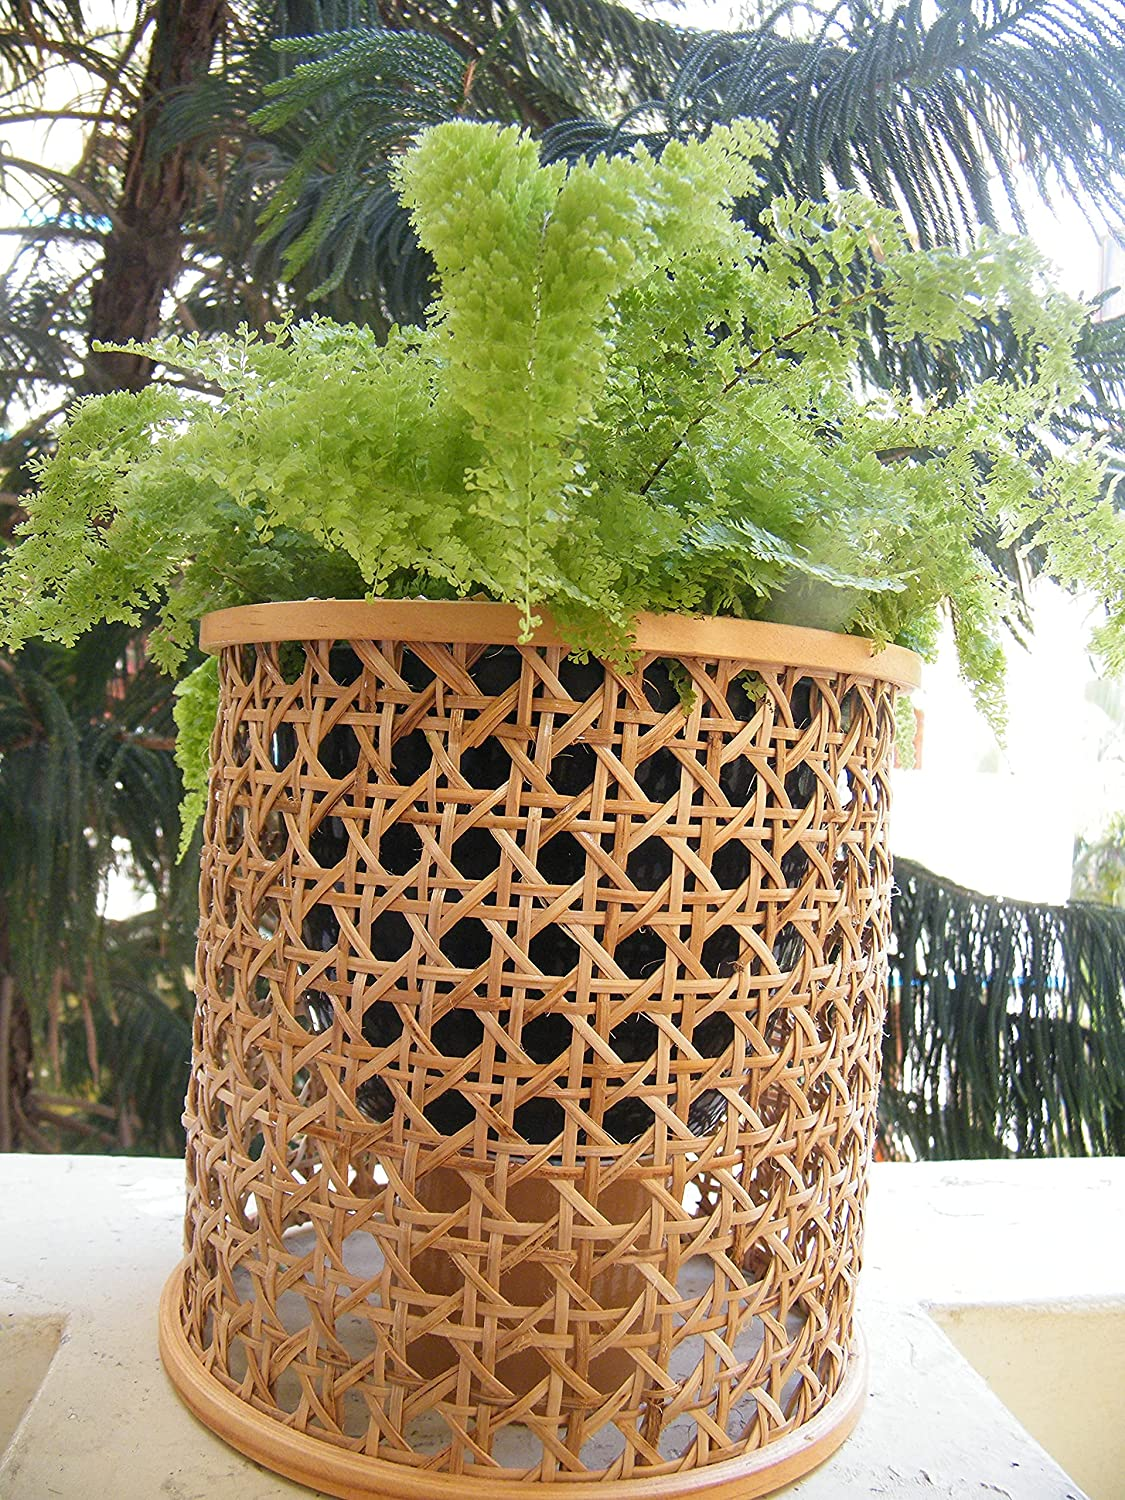 Superior Decorative planter Directly managed store flower pot Base cane open cover